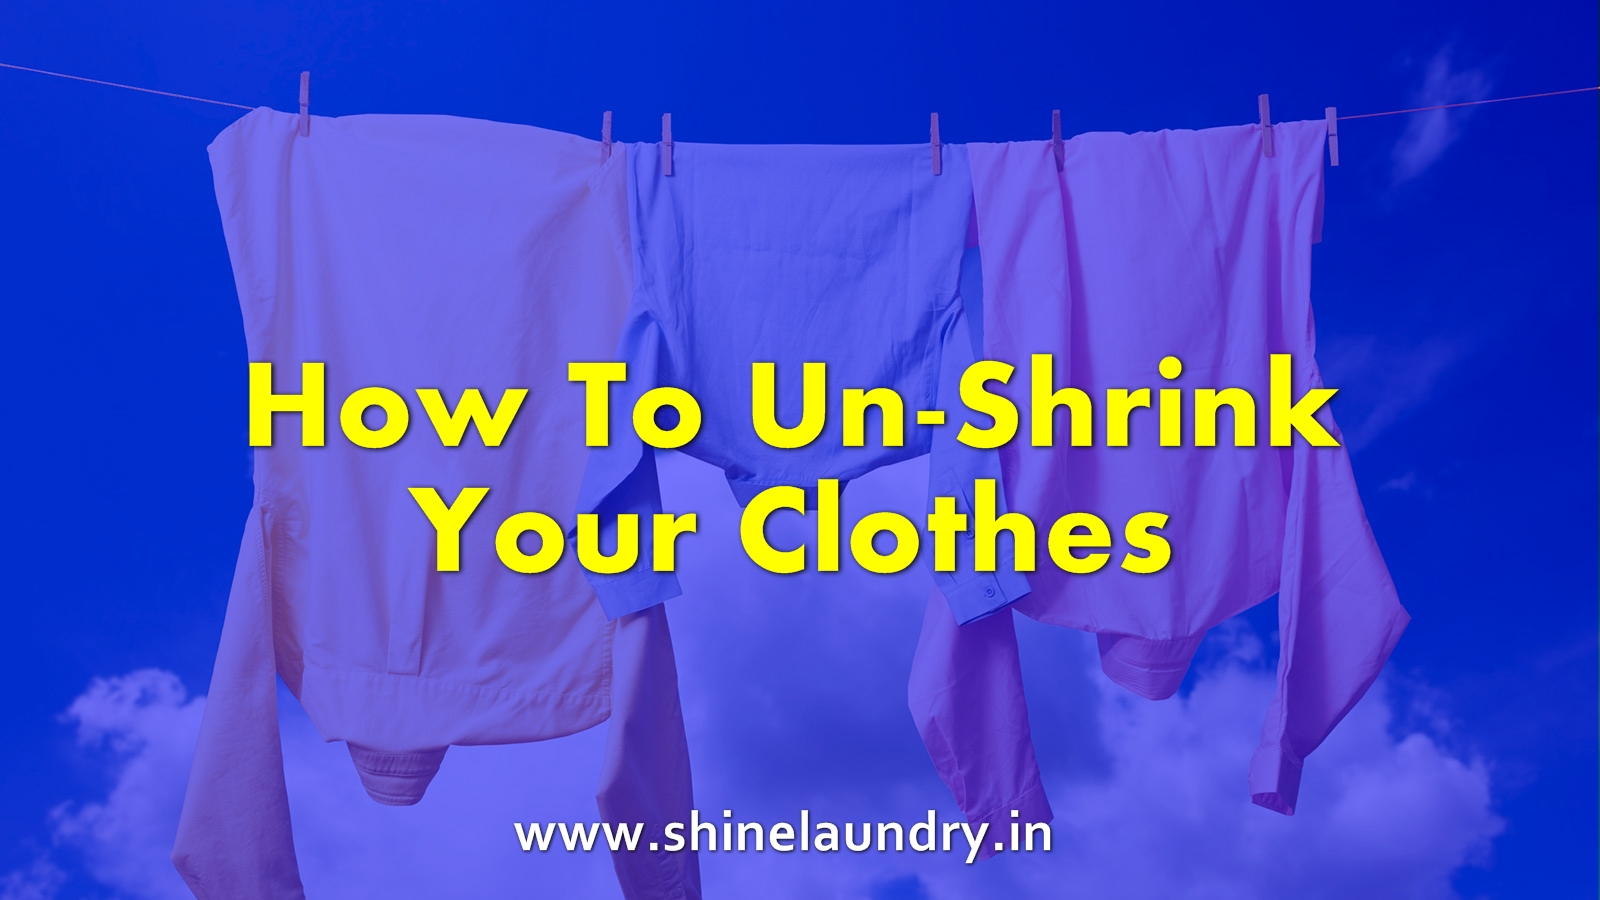 unshrink clothes Ever pulled a garment out of the dryer that suddenly would better fit a lanky tween than a grown adult? It's happened to the best of us. There are some tricks to unshrinking that favorite piece, although sometimes it's but a temporary fix. Still, it might help you to squeeze out a few more wears! One may even look for the best online laundry services in Bhubaneswar.